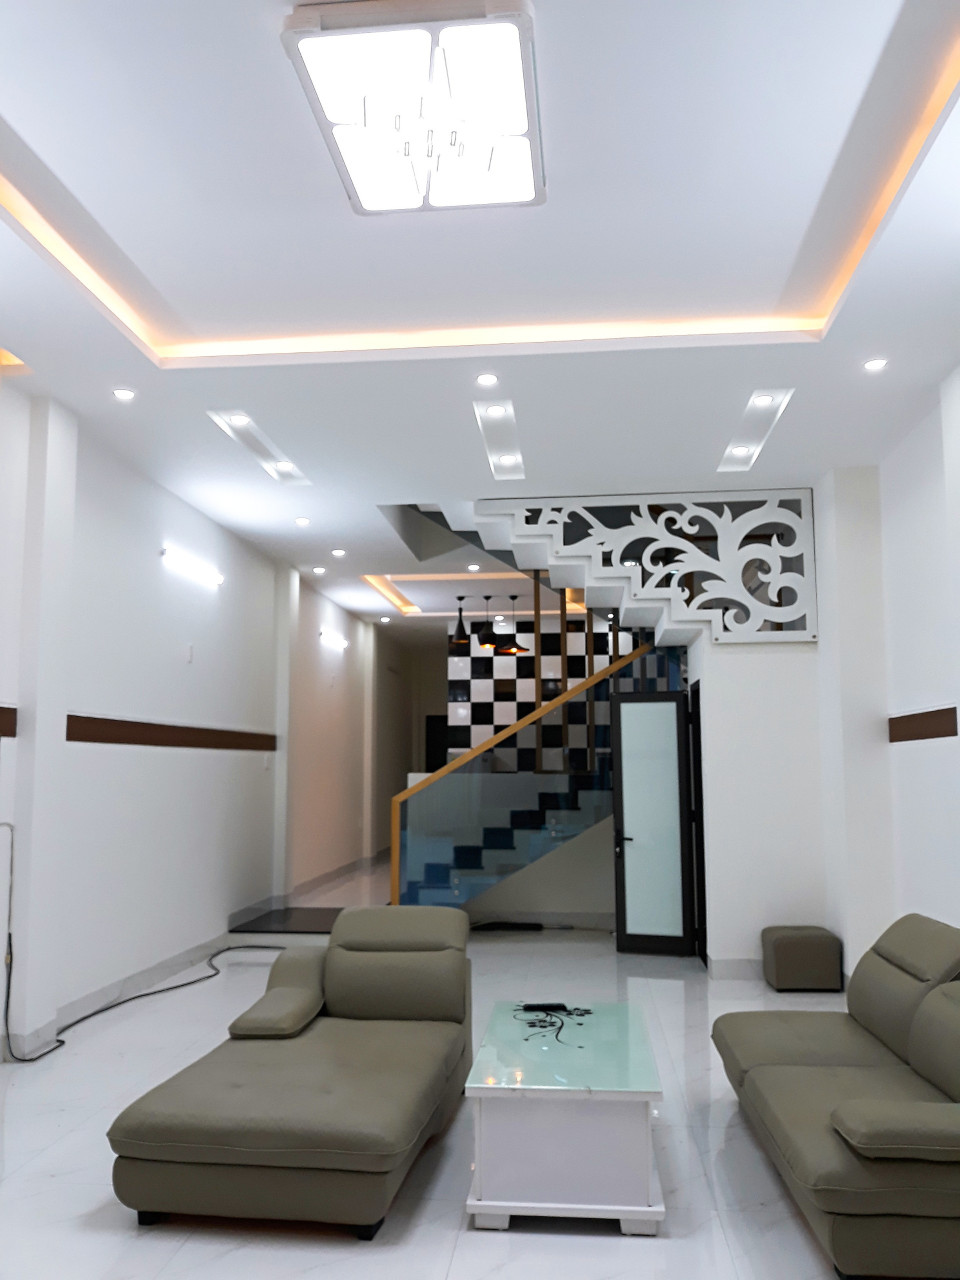 3 bedrooms house for rent near An Thuong